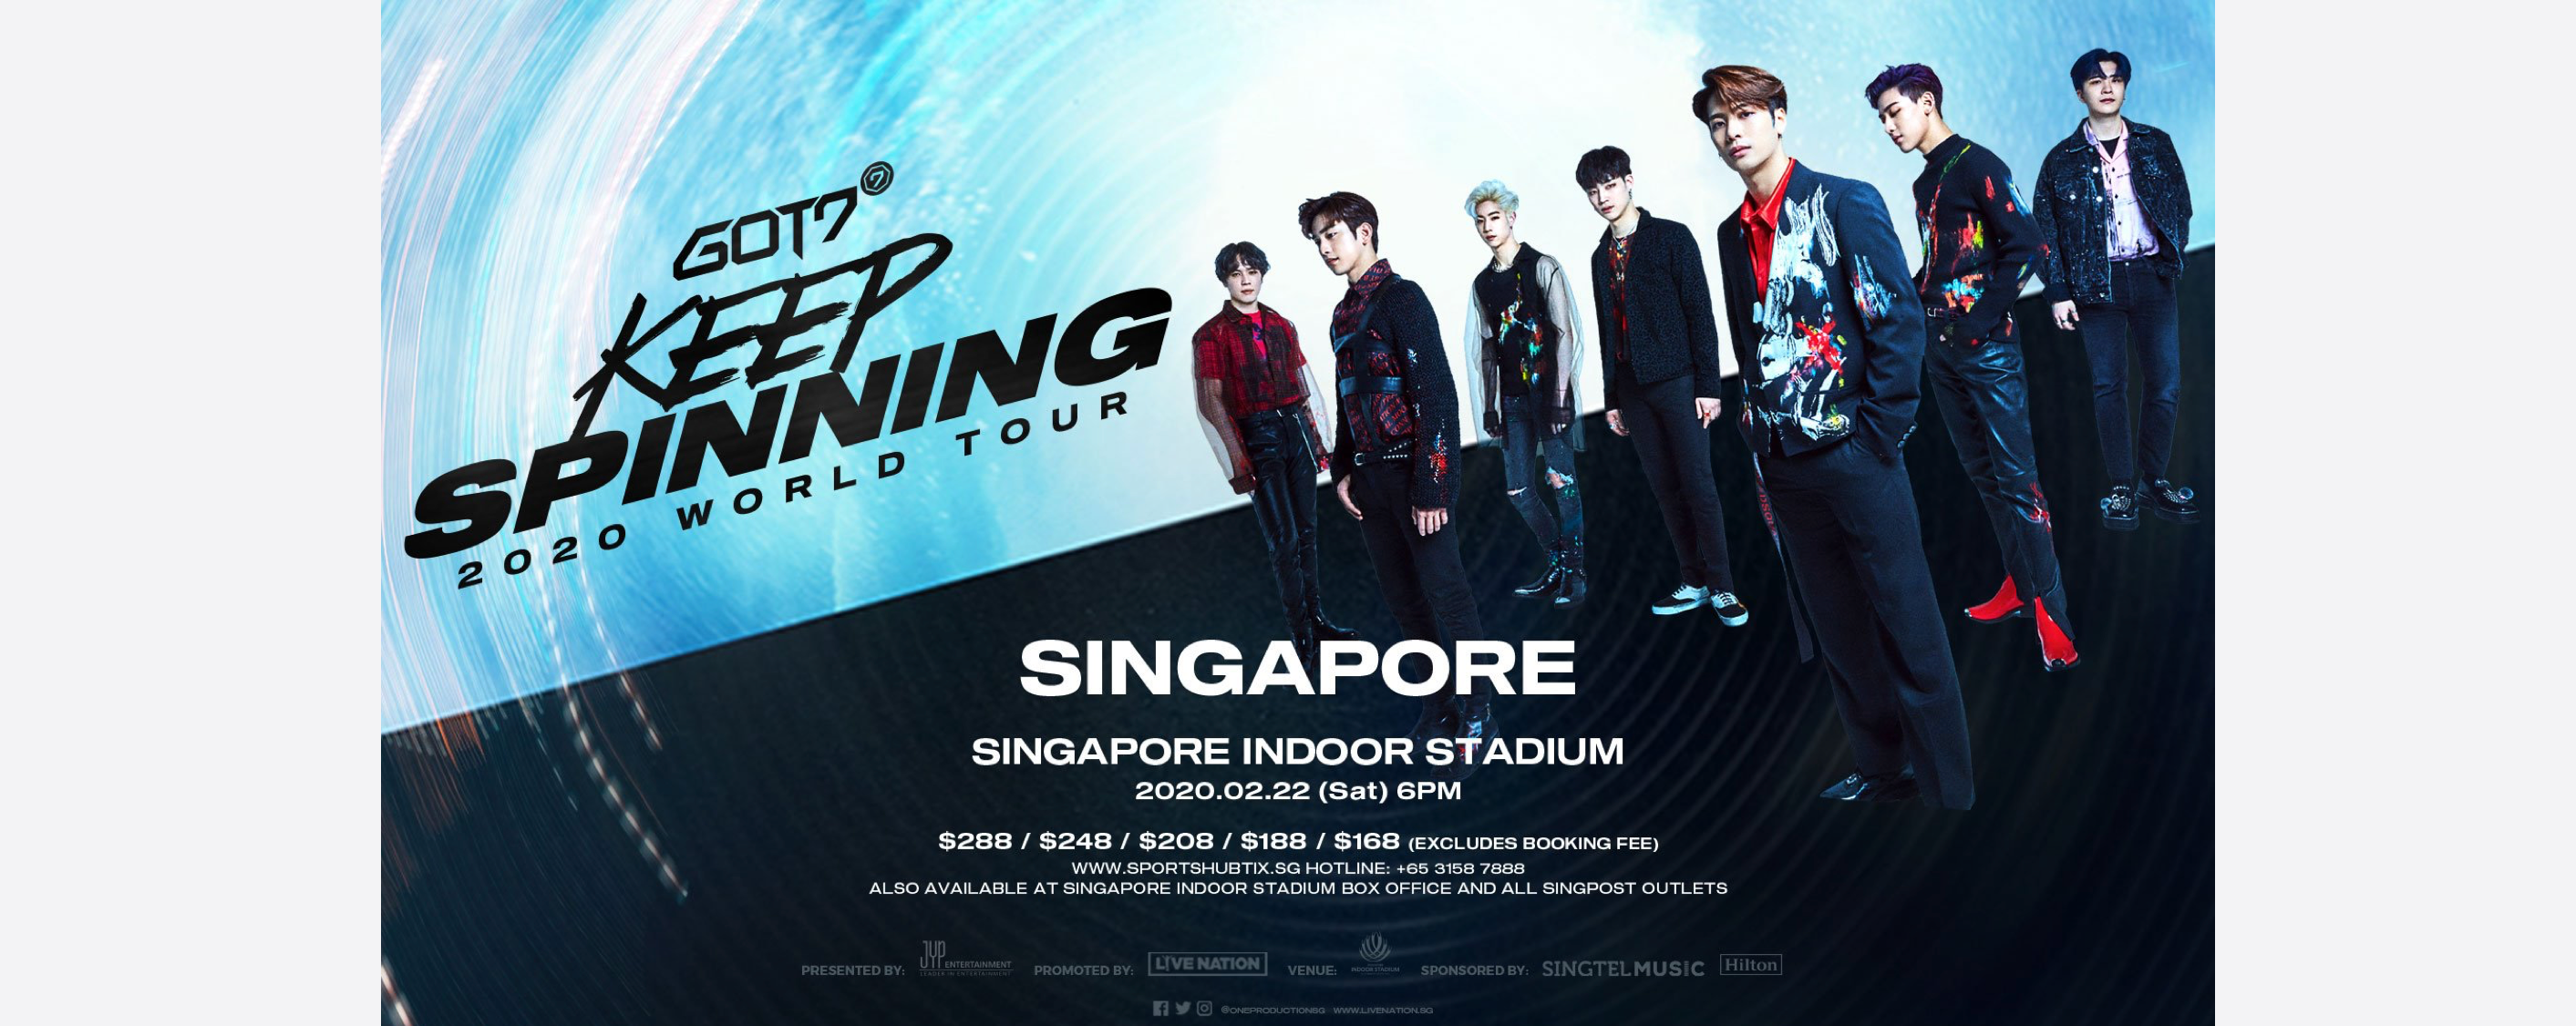 [CANCELLED] GOT7 2020 World Tour 'Keep Spinning' in Singapore